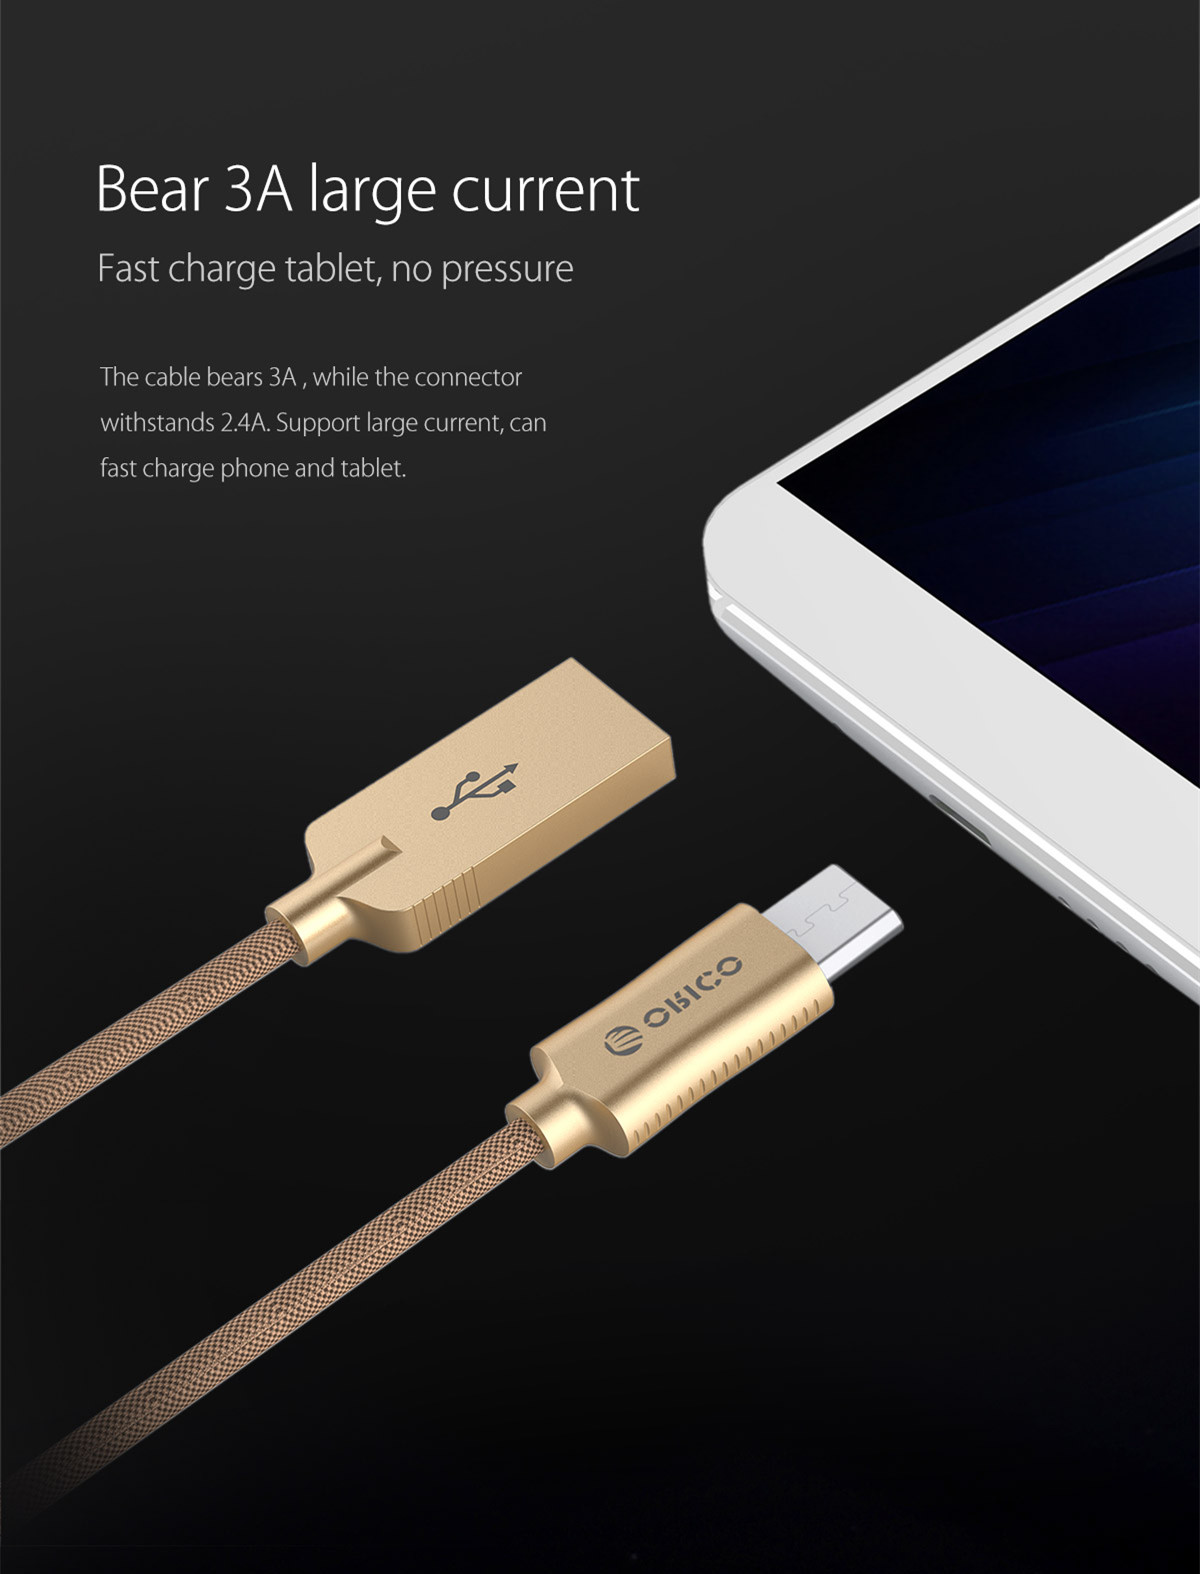 3A large current Android data cable, fast charge